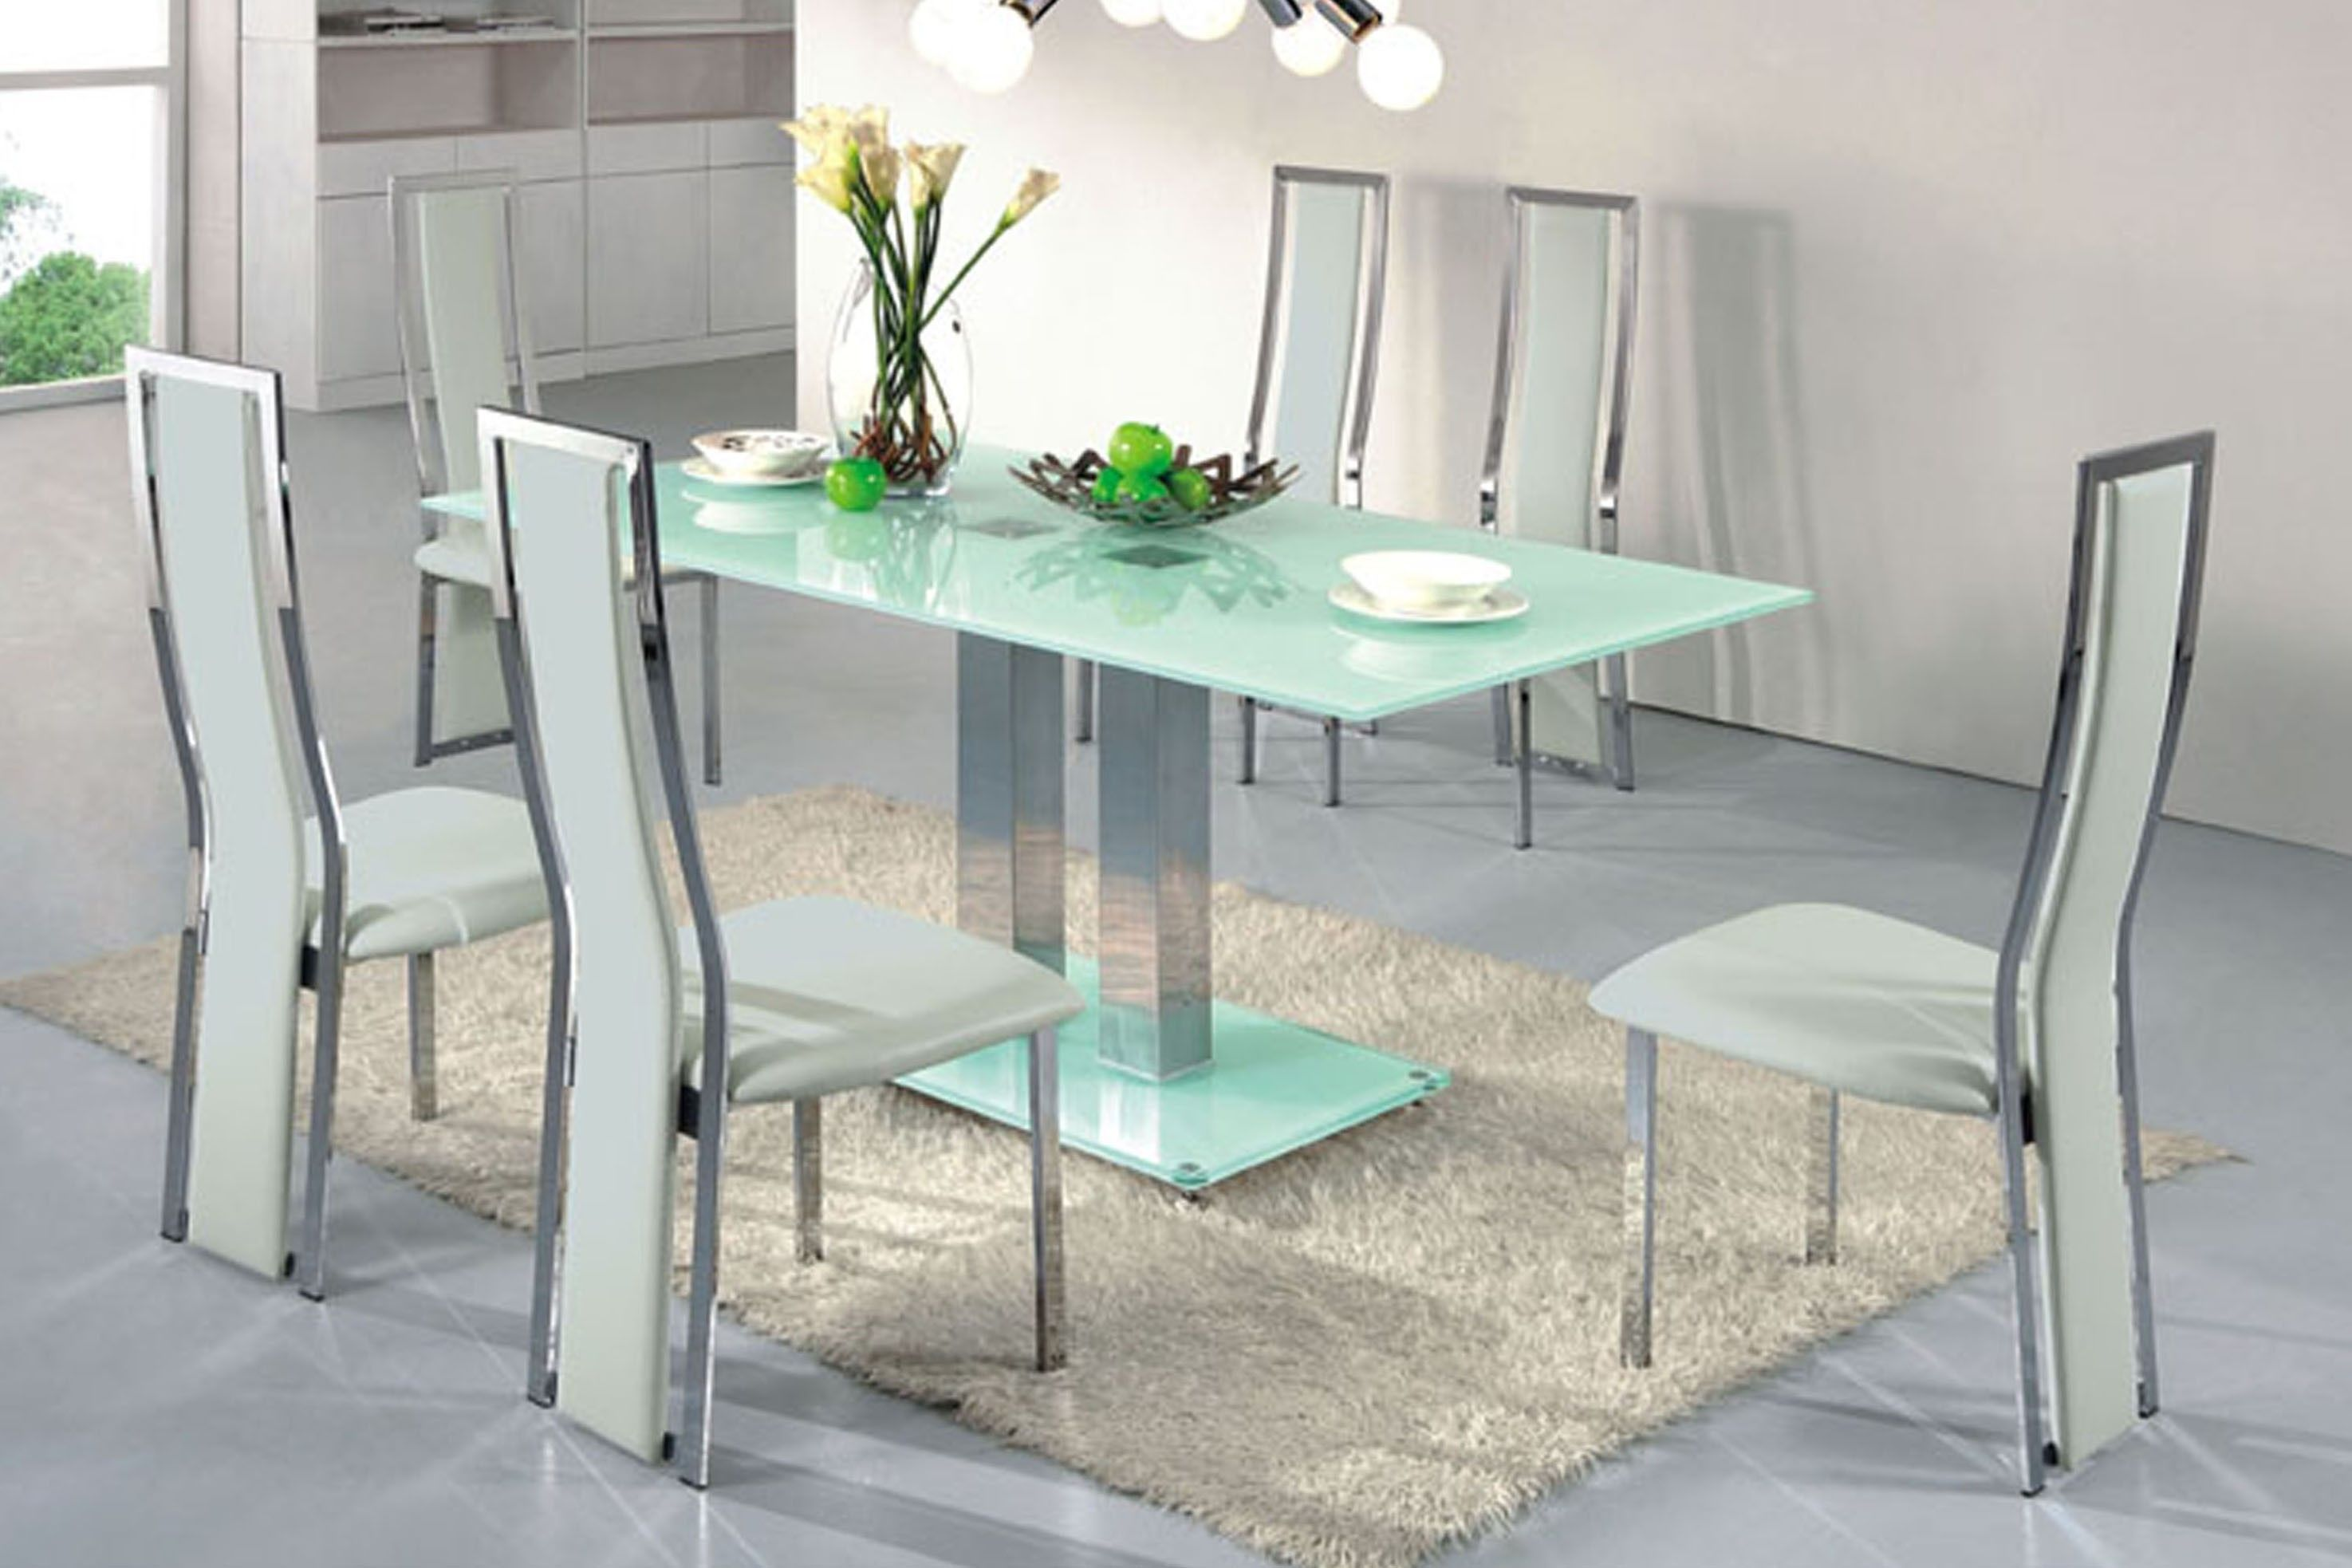 Modern Espresso Dining Room Table  Go To Chinesefurnitureshop Amusing Espresso Dining Room Sets Design Inspiration